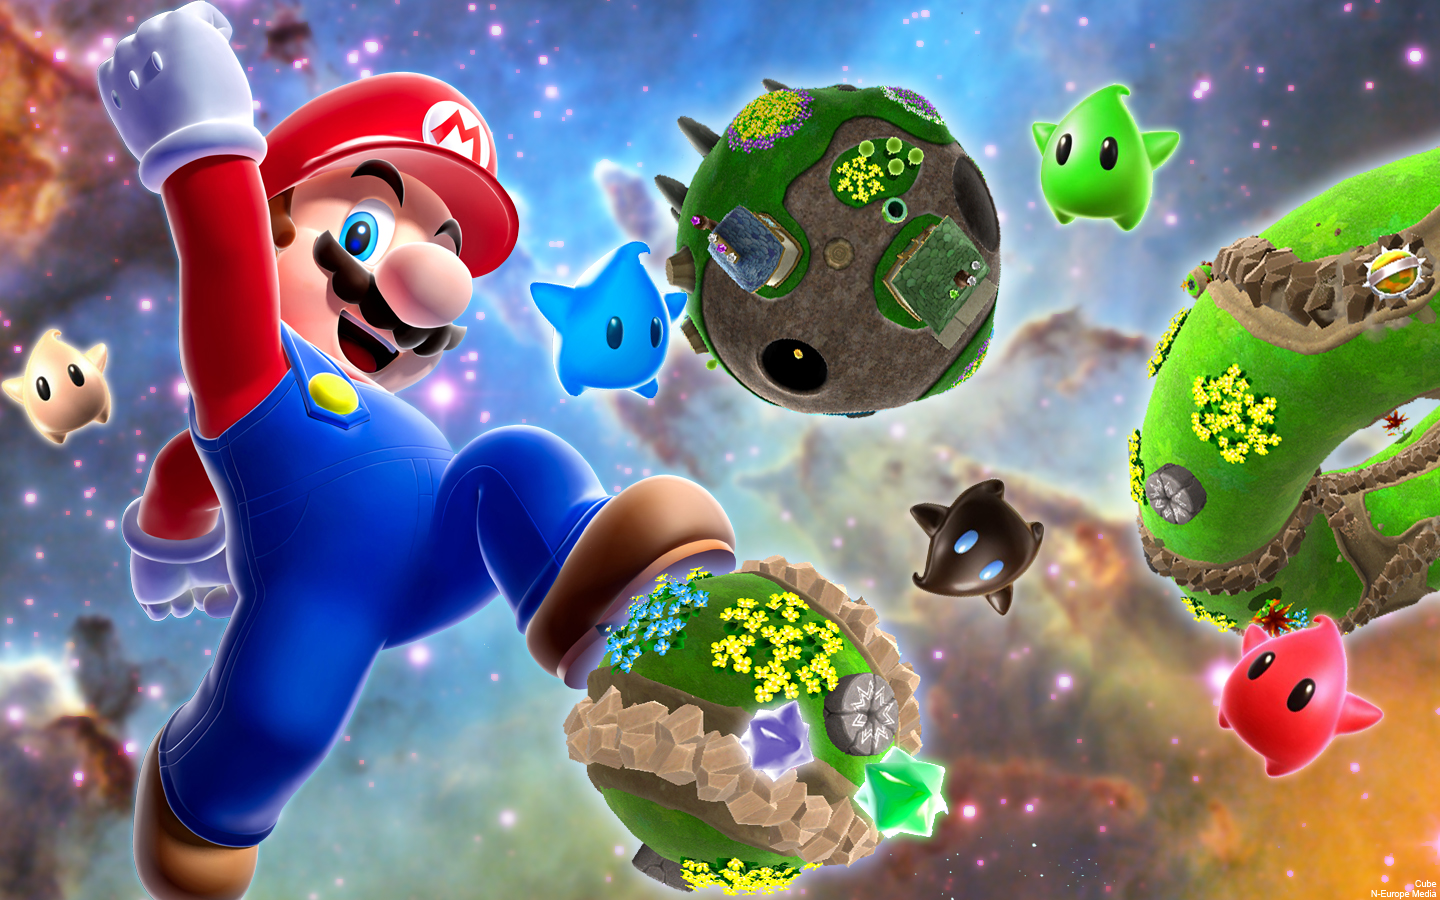 super-mario-galaxy-jump-wallpaper-by-DJcube-n-europe-1440x900px